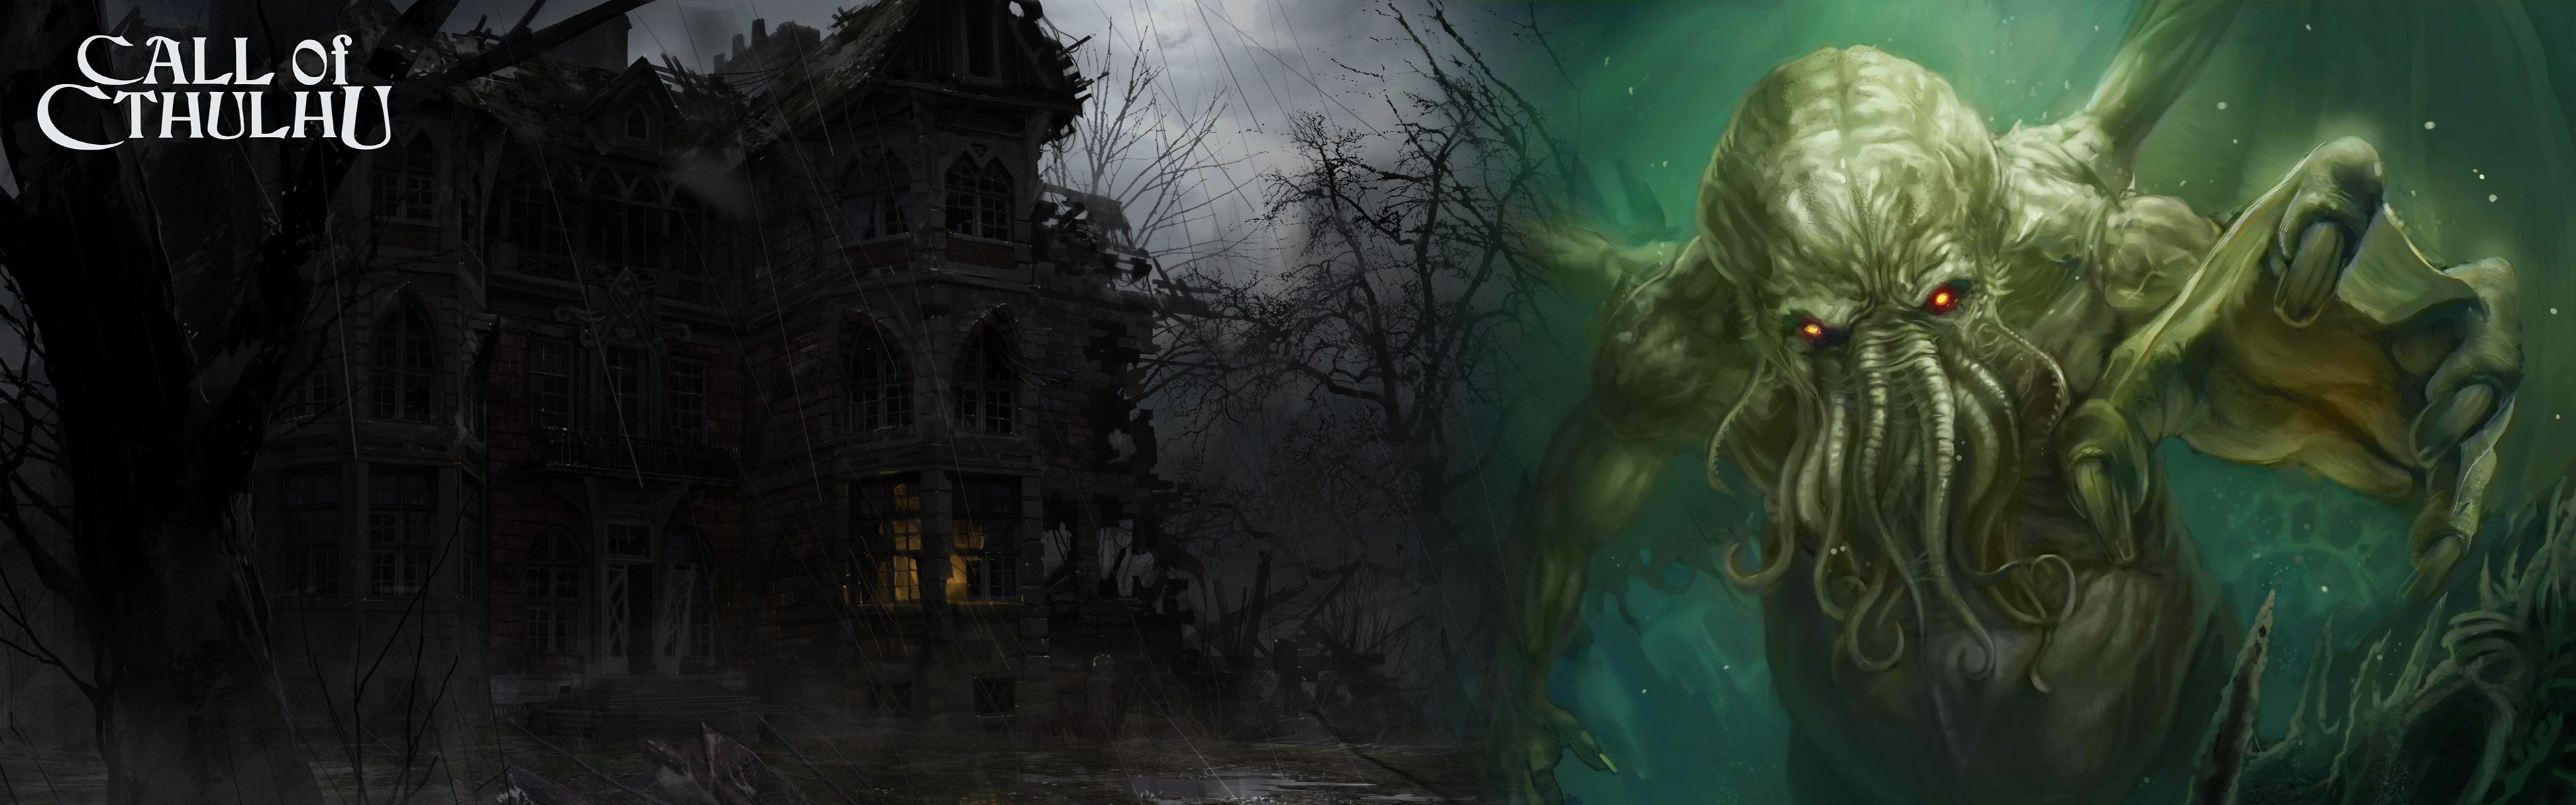 3840x1200 Cthulhu Awaits · CthulhuDisplayWallpaperThings